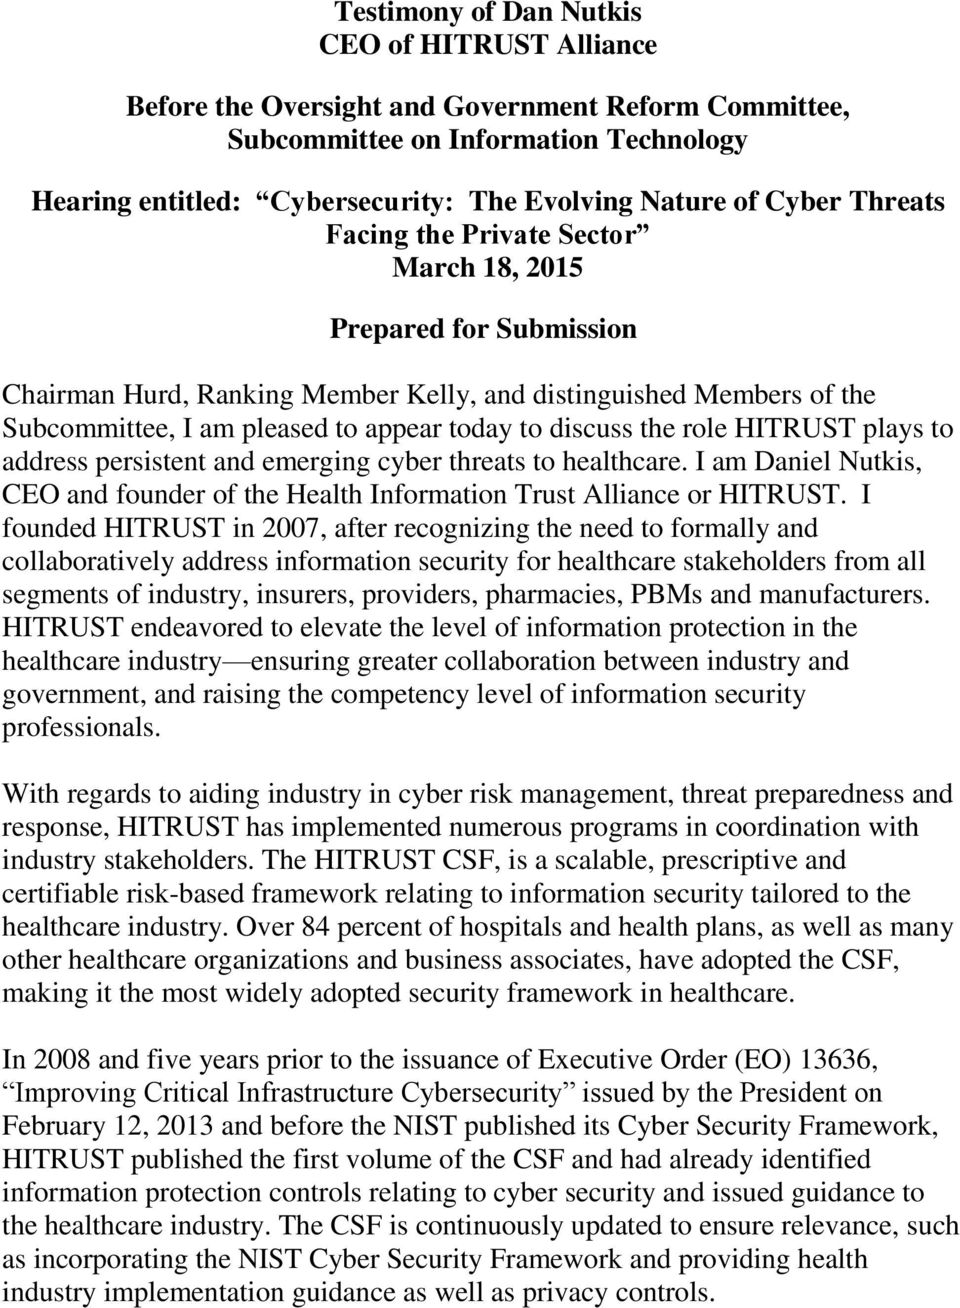 discuss the role HITRUST plays to address persistent and emerging cyber threats to healthcare. I am Daniel Nutkis, CEO and founder of the Health Information Trust Alliance or HITRUST.